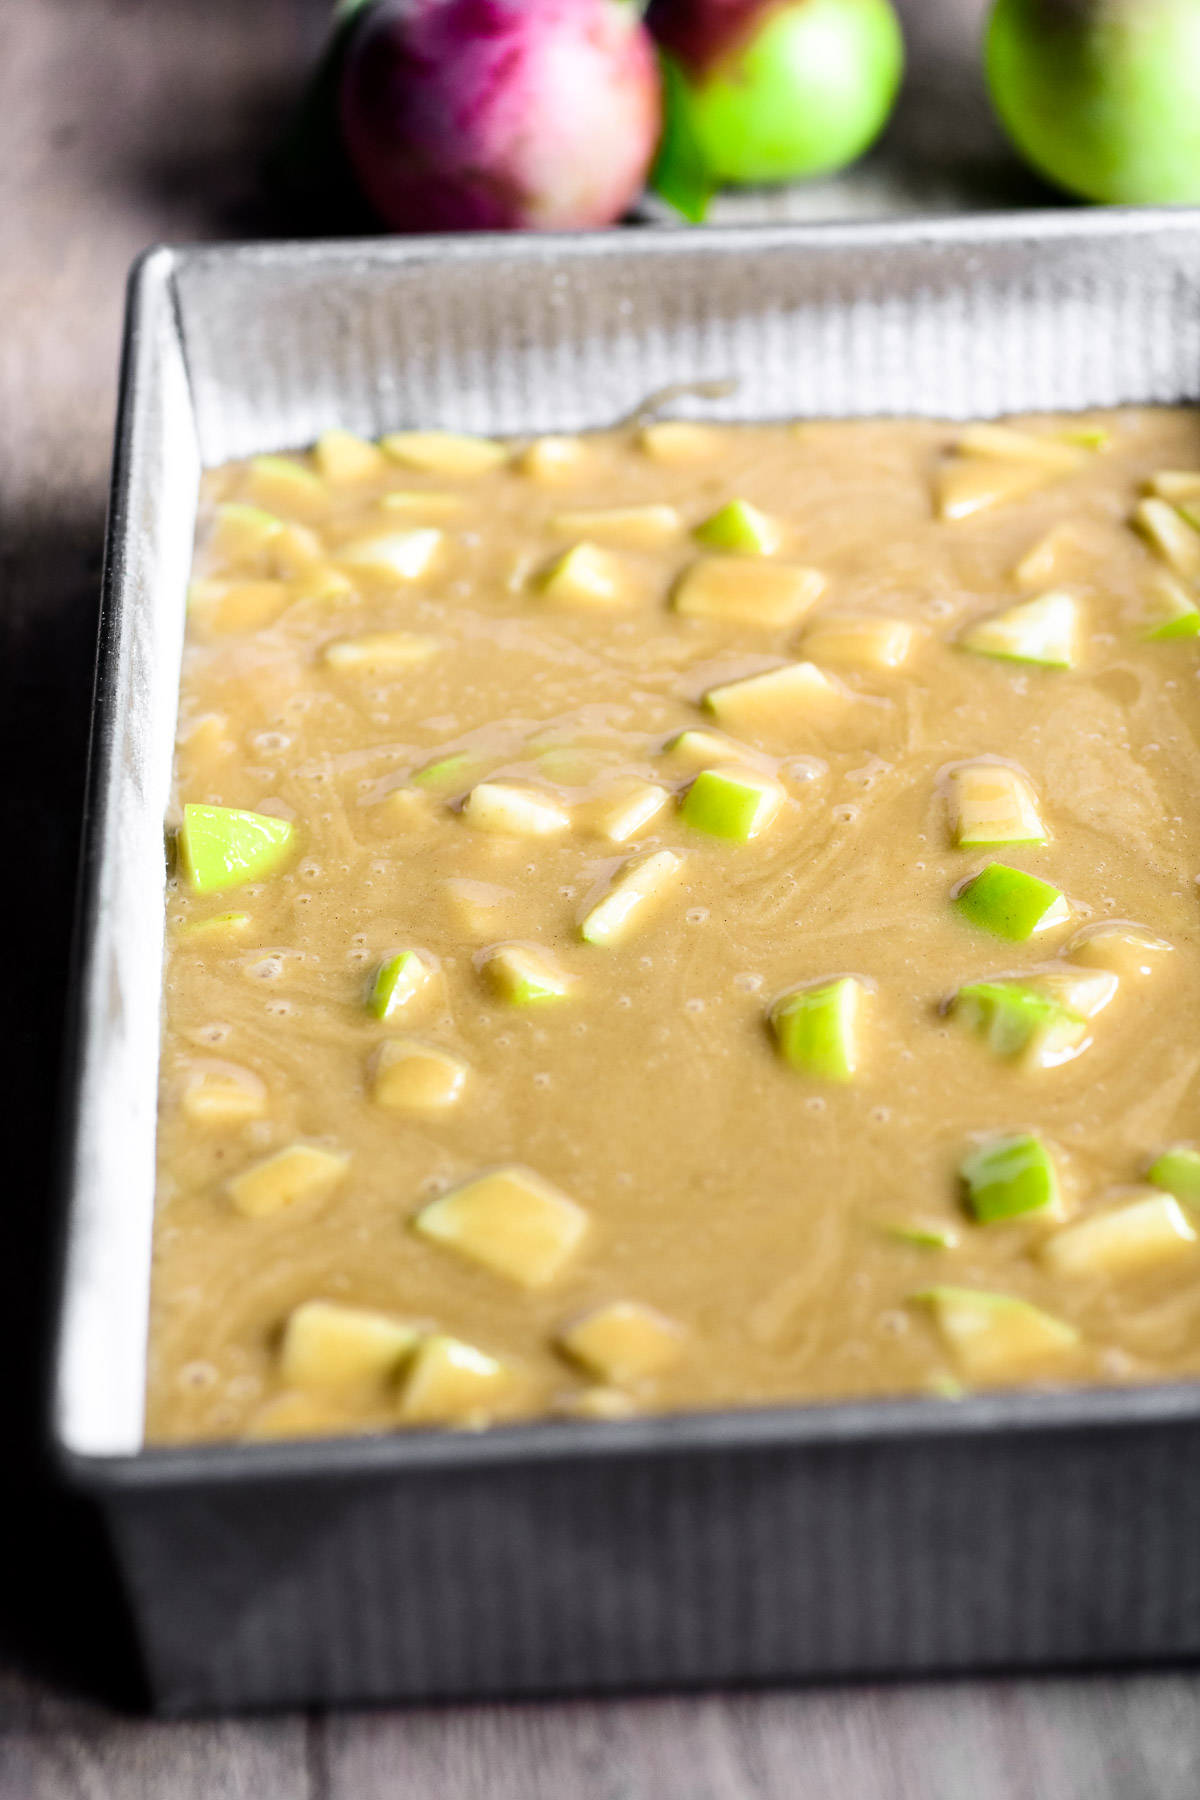 apple cake batter in pan